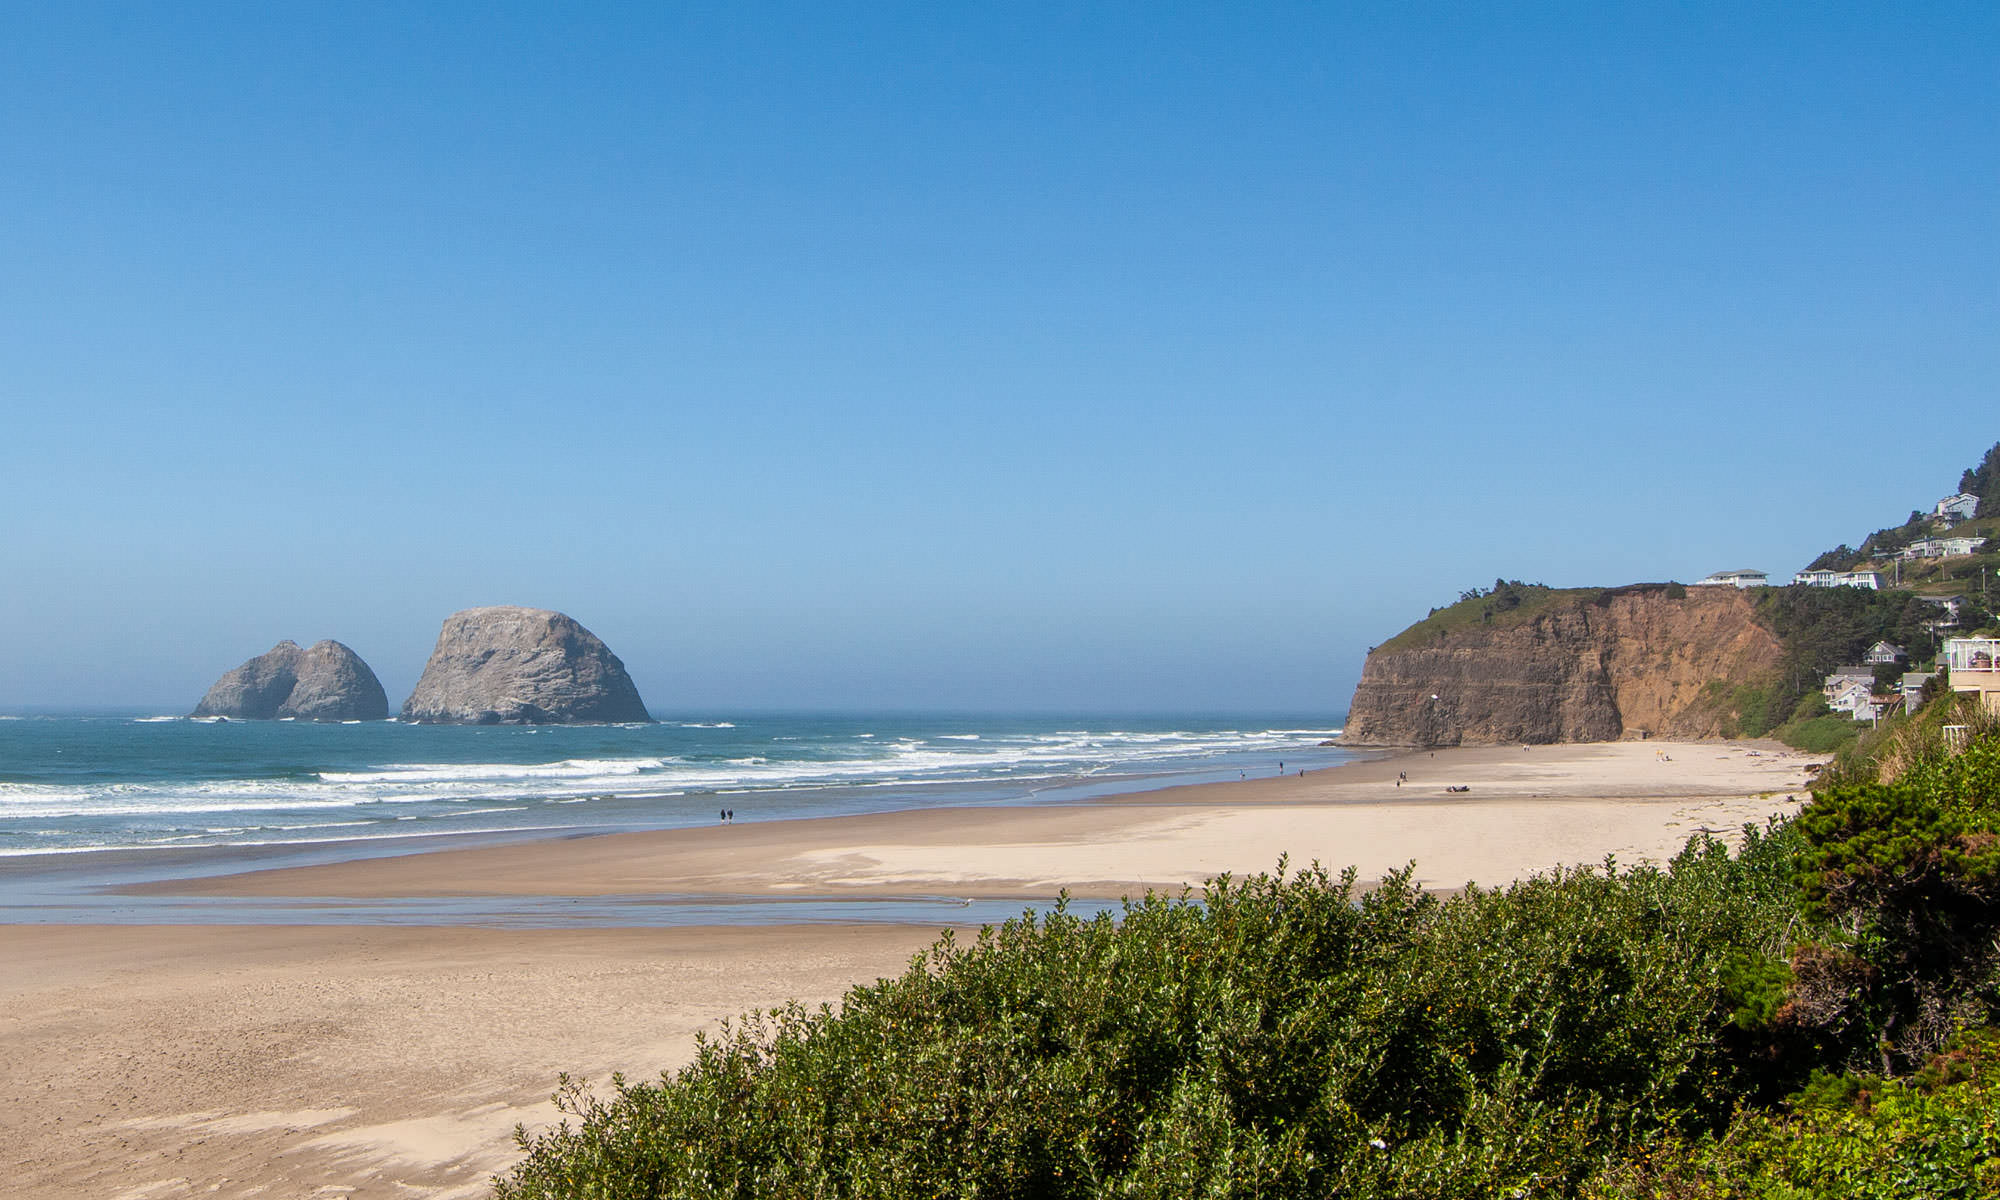 Oceanside is a scenic community located just off the Three Capes Scenic Route.